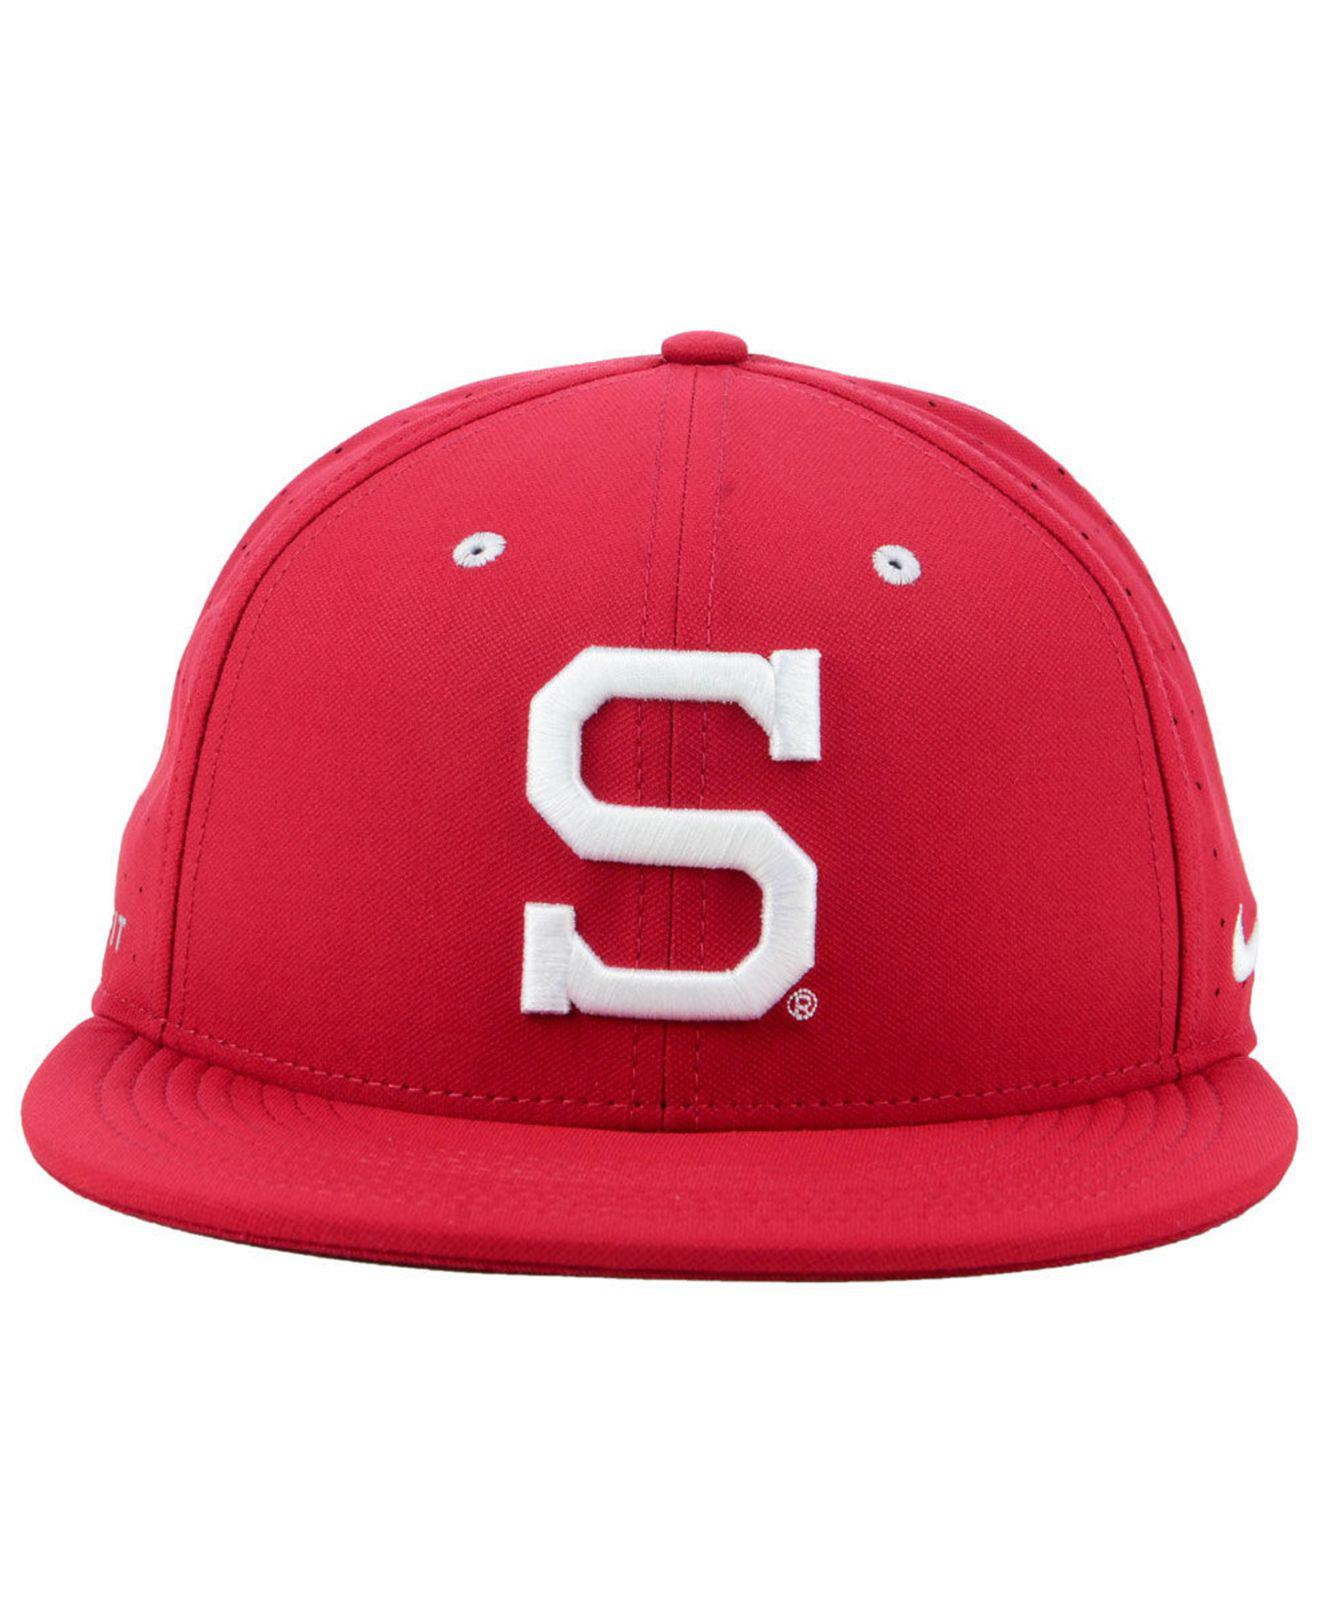 2ed5de7ecb4 ... get lyst nike stanford cardinal aerobill true fitted baseball cap in  red for men 1b294 f3484